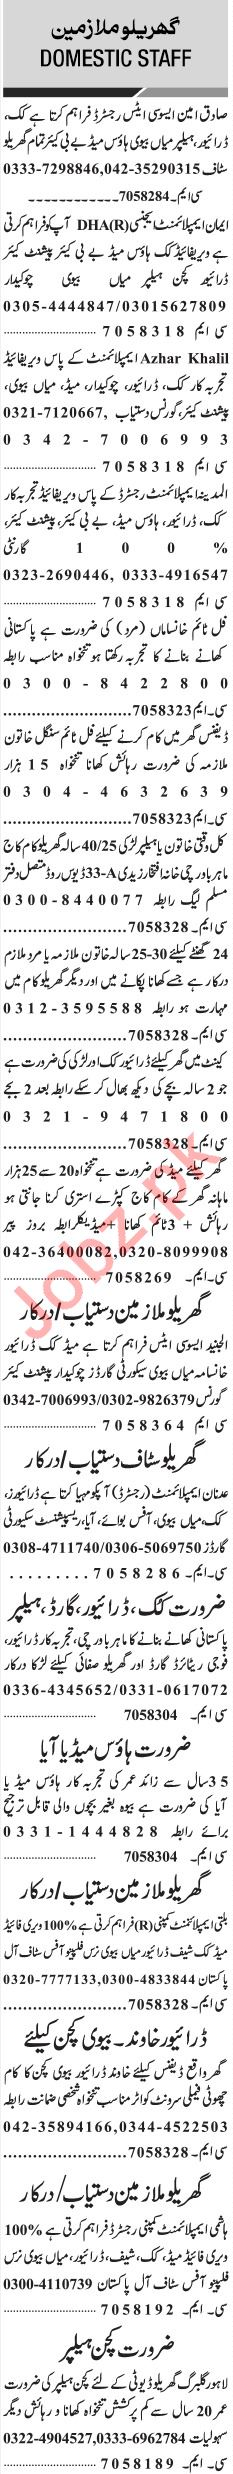 Jang Sunday Classified Ads 30th Dec 2018 for Domestic Staff